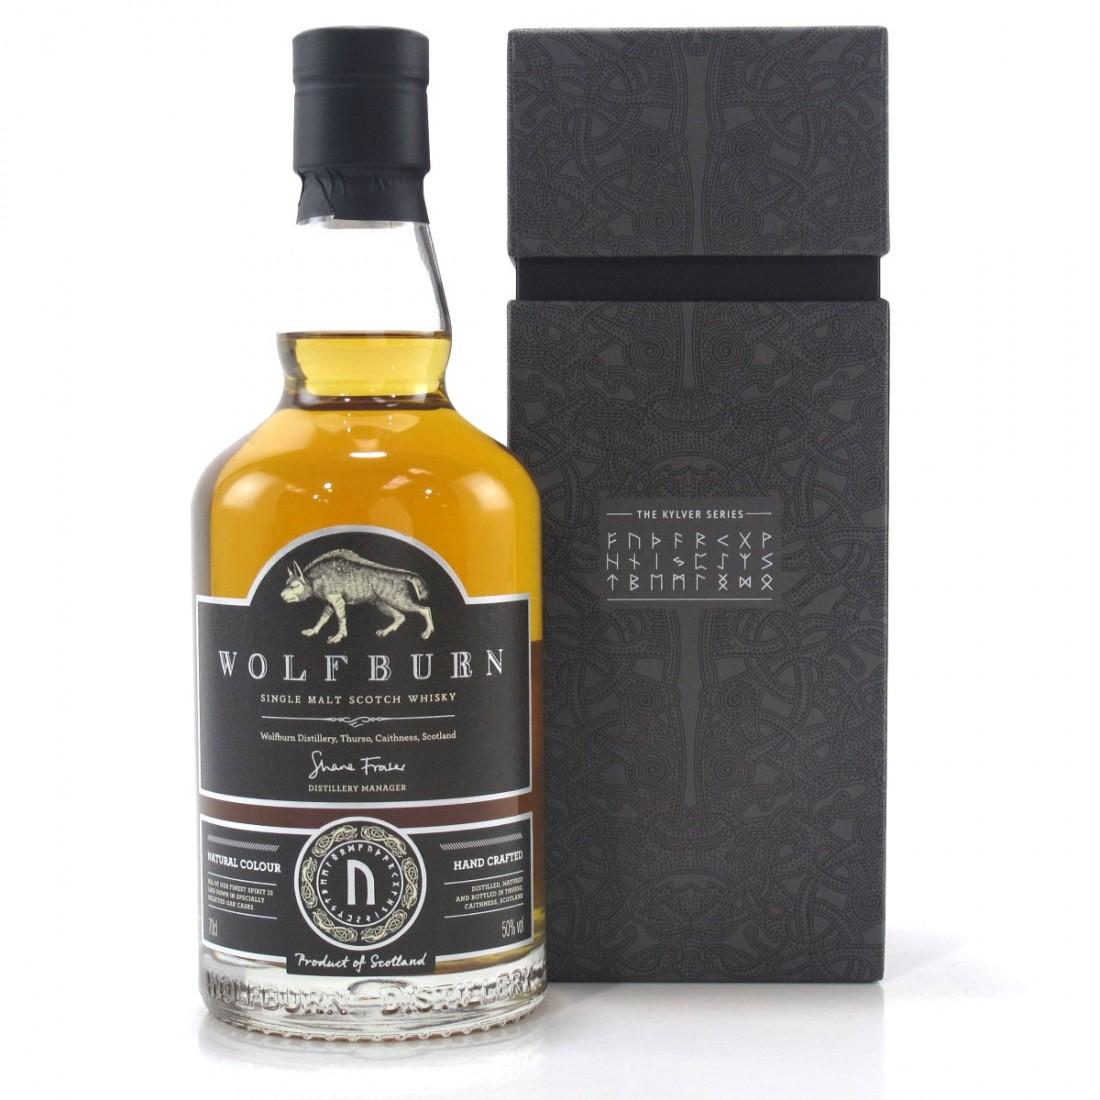 Wolfburn Kylver Series Limited Edition 2nd Release